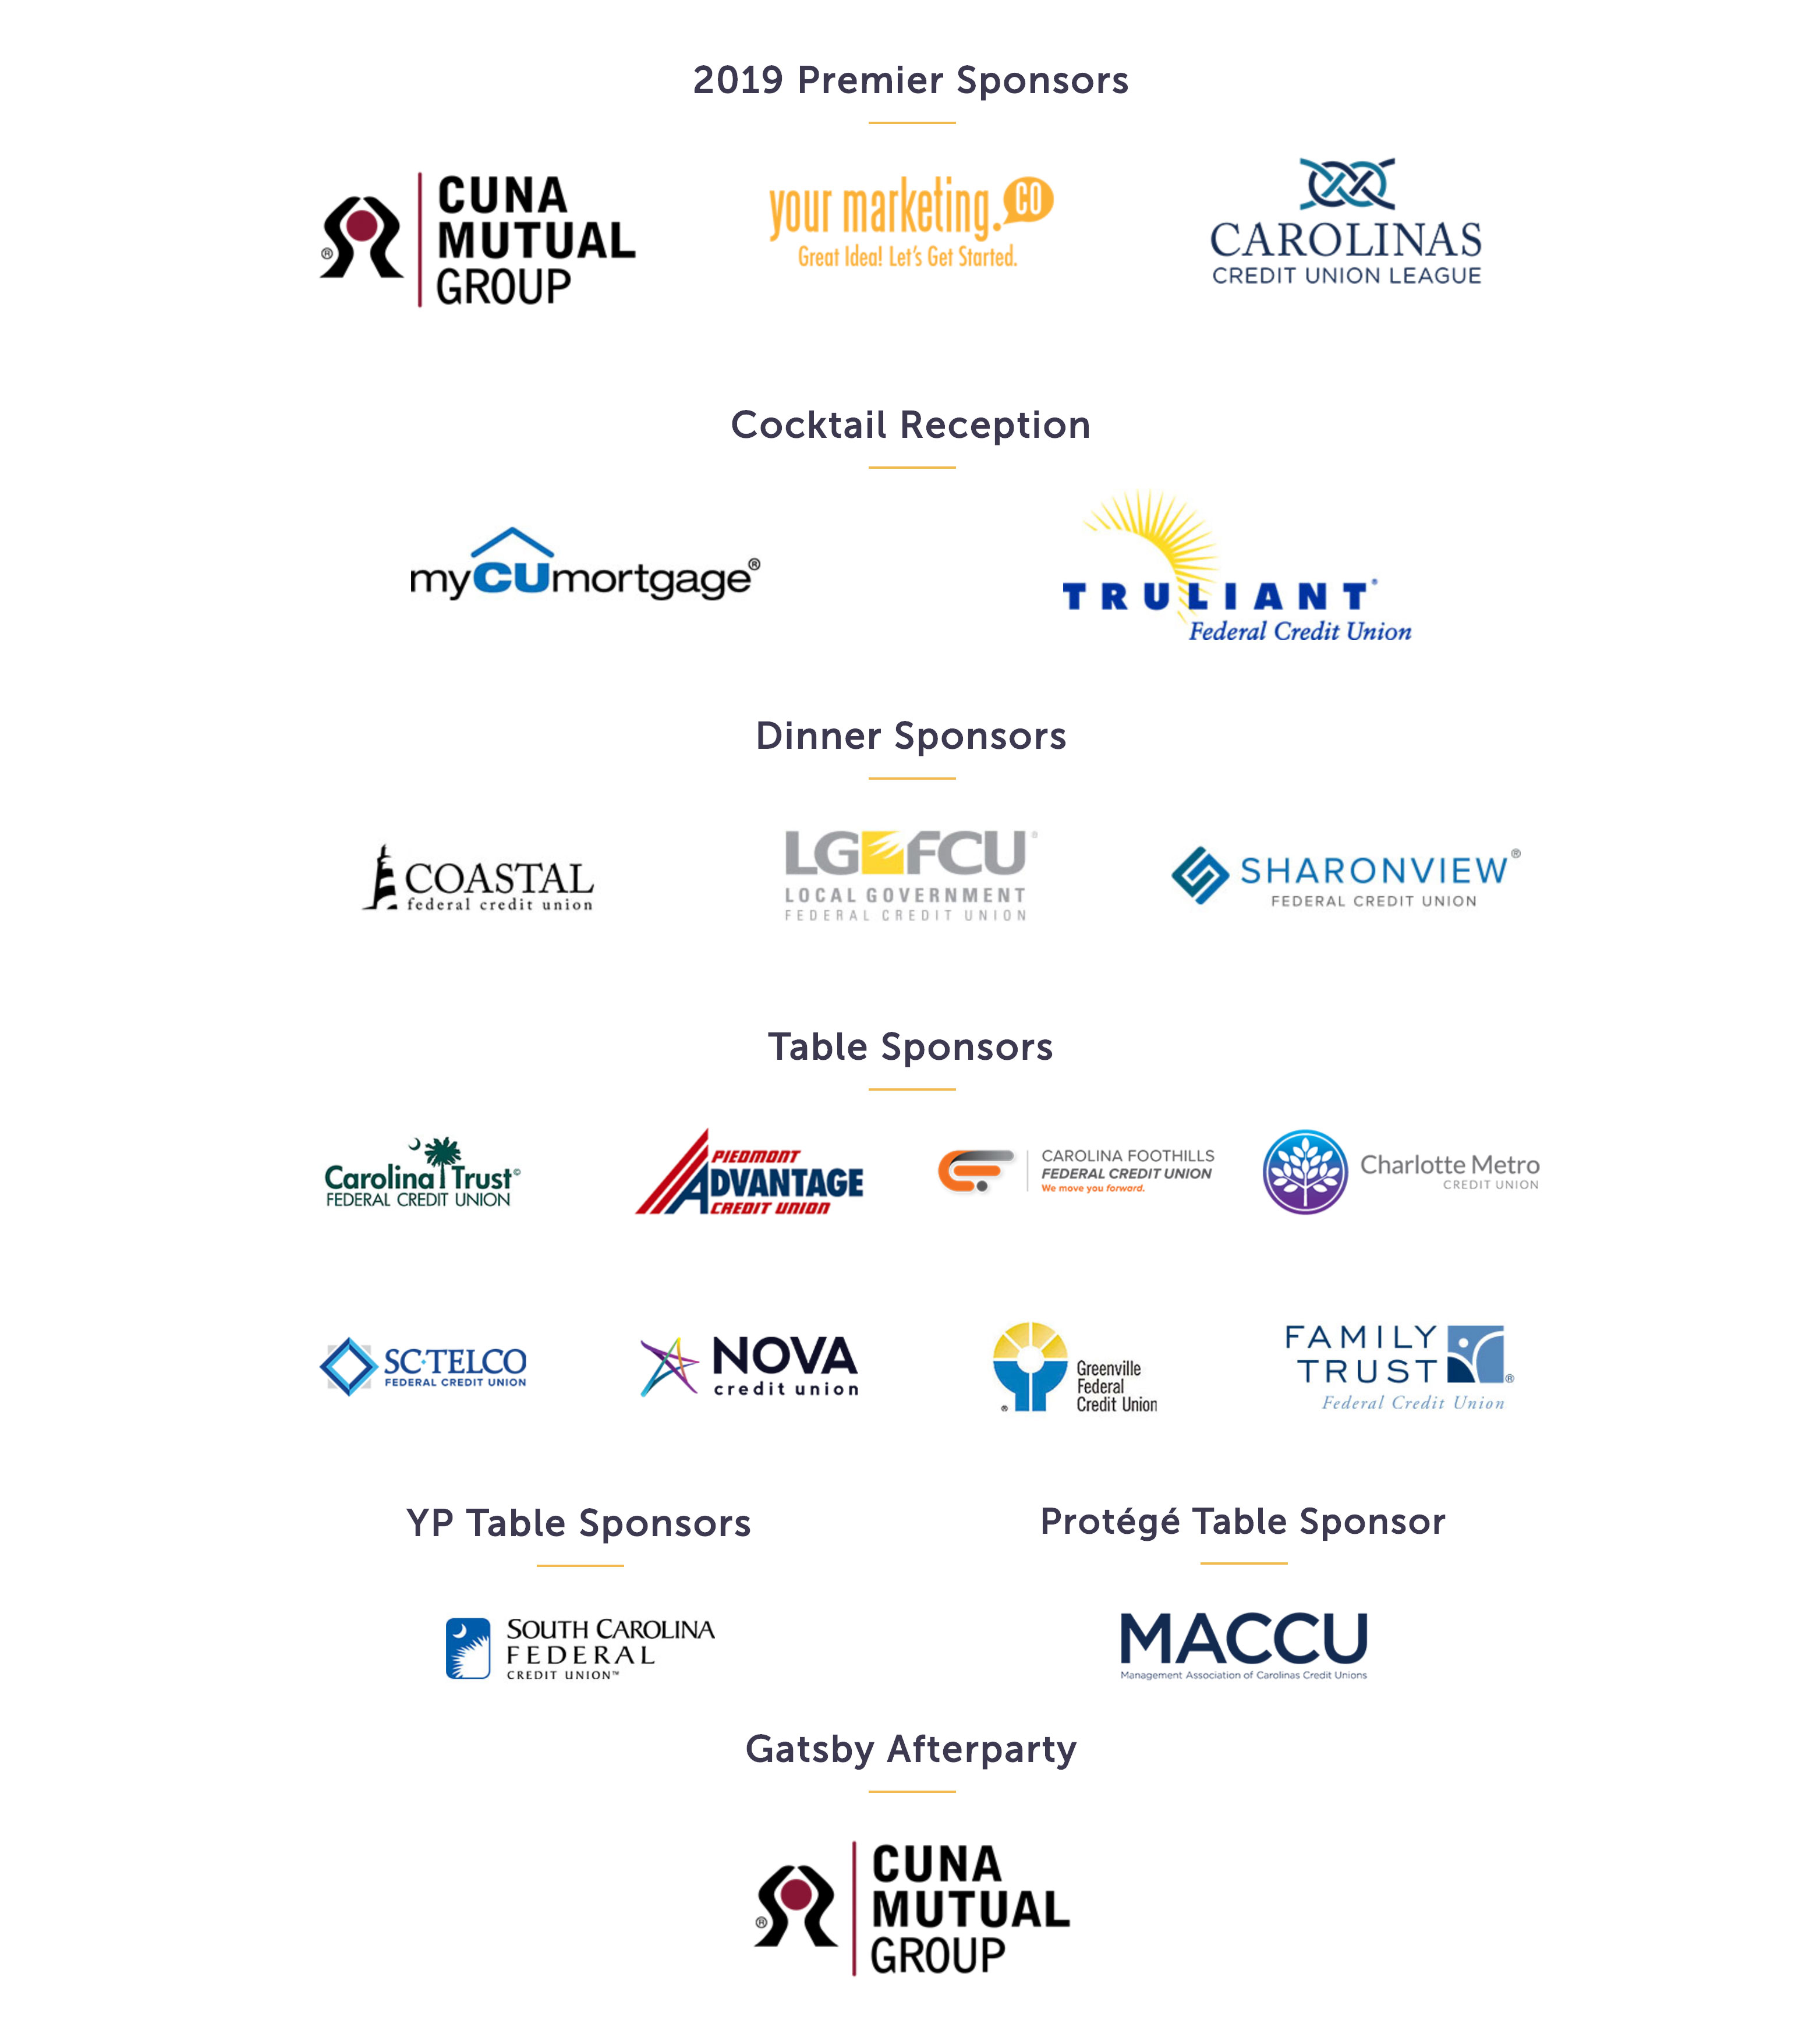 2020 Gala Sponsors to date